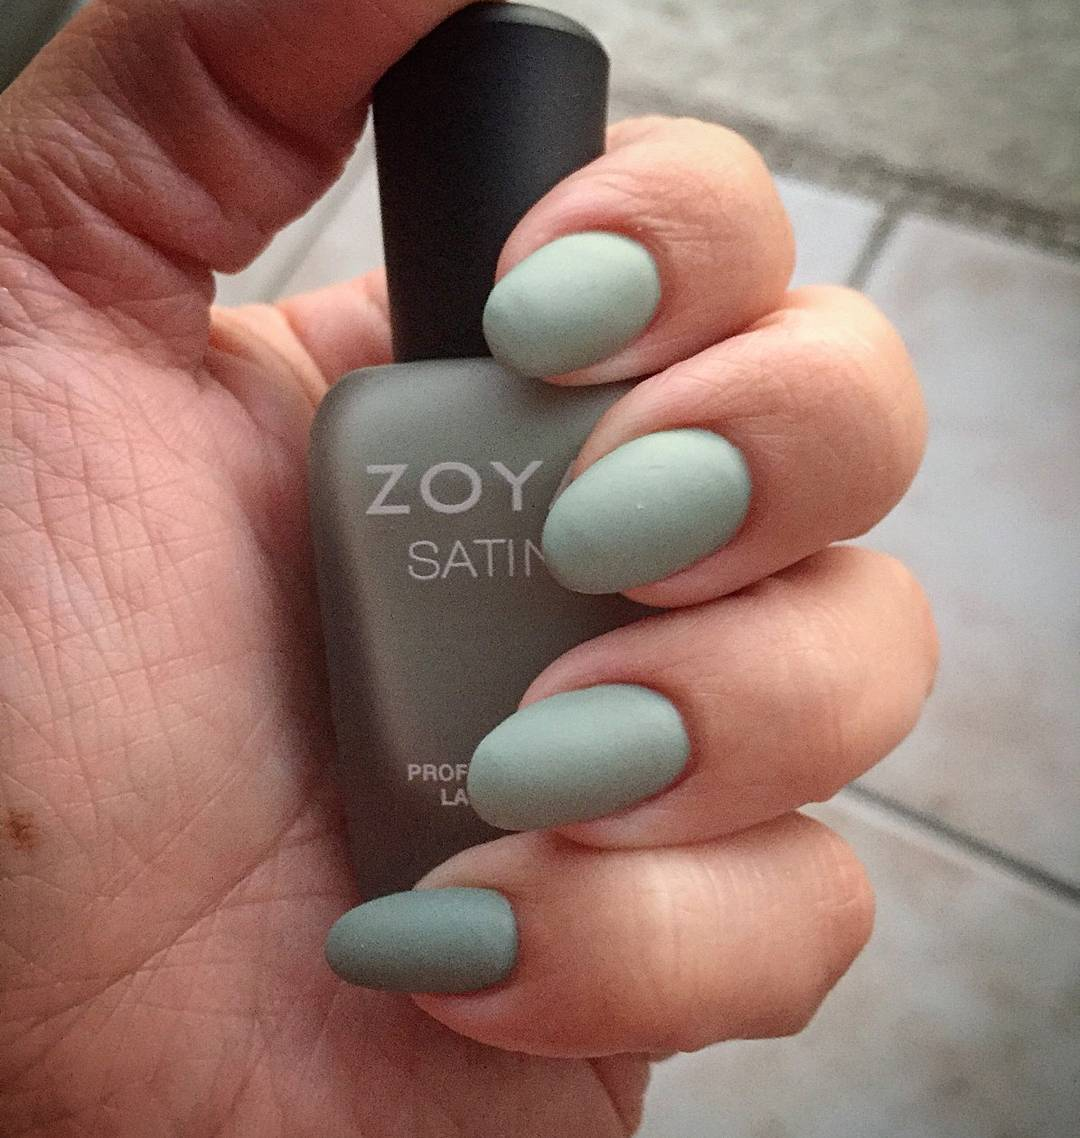 53 Classy Nail Art Designs For Neutral Nails